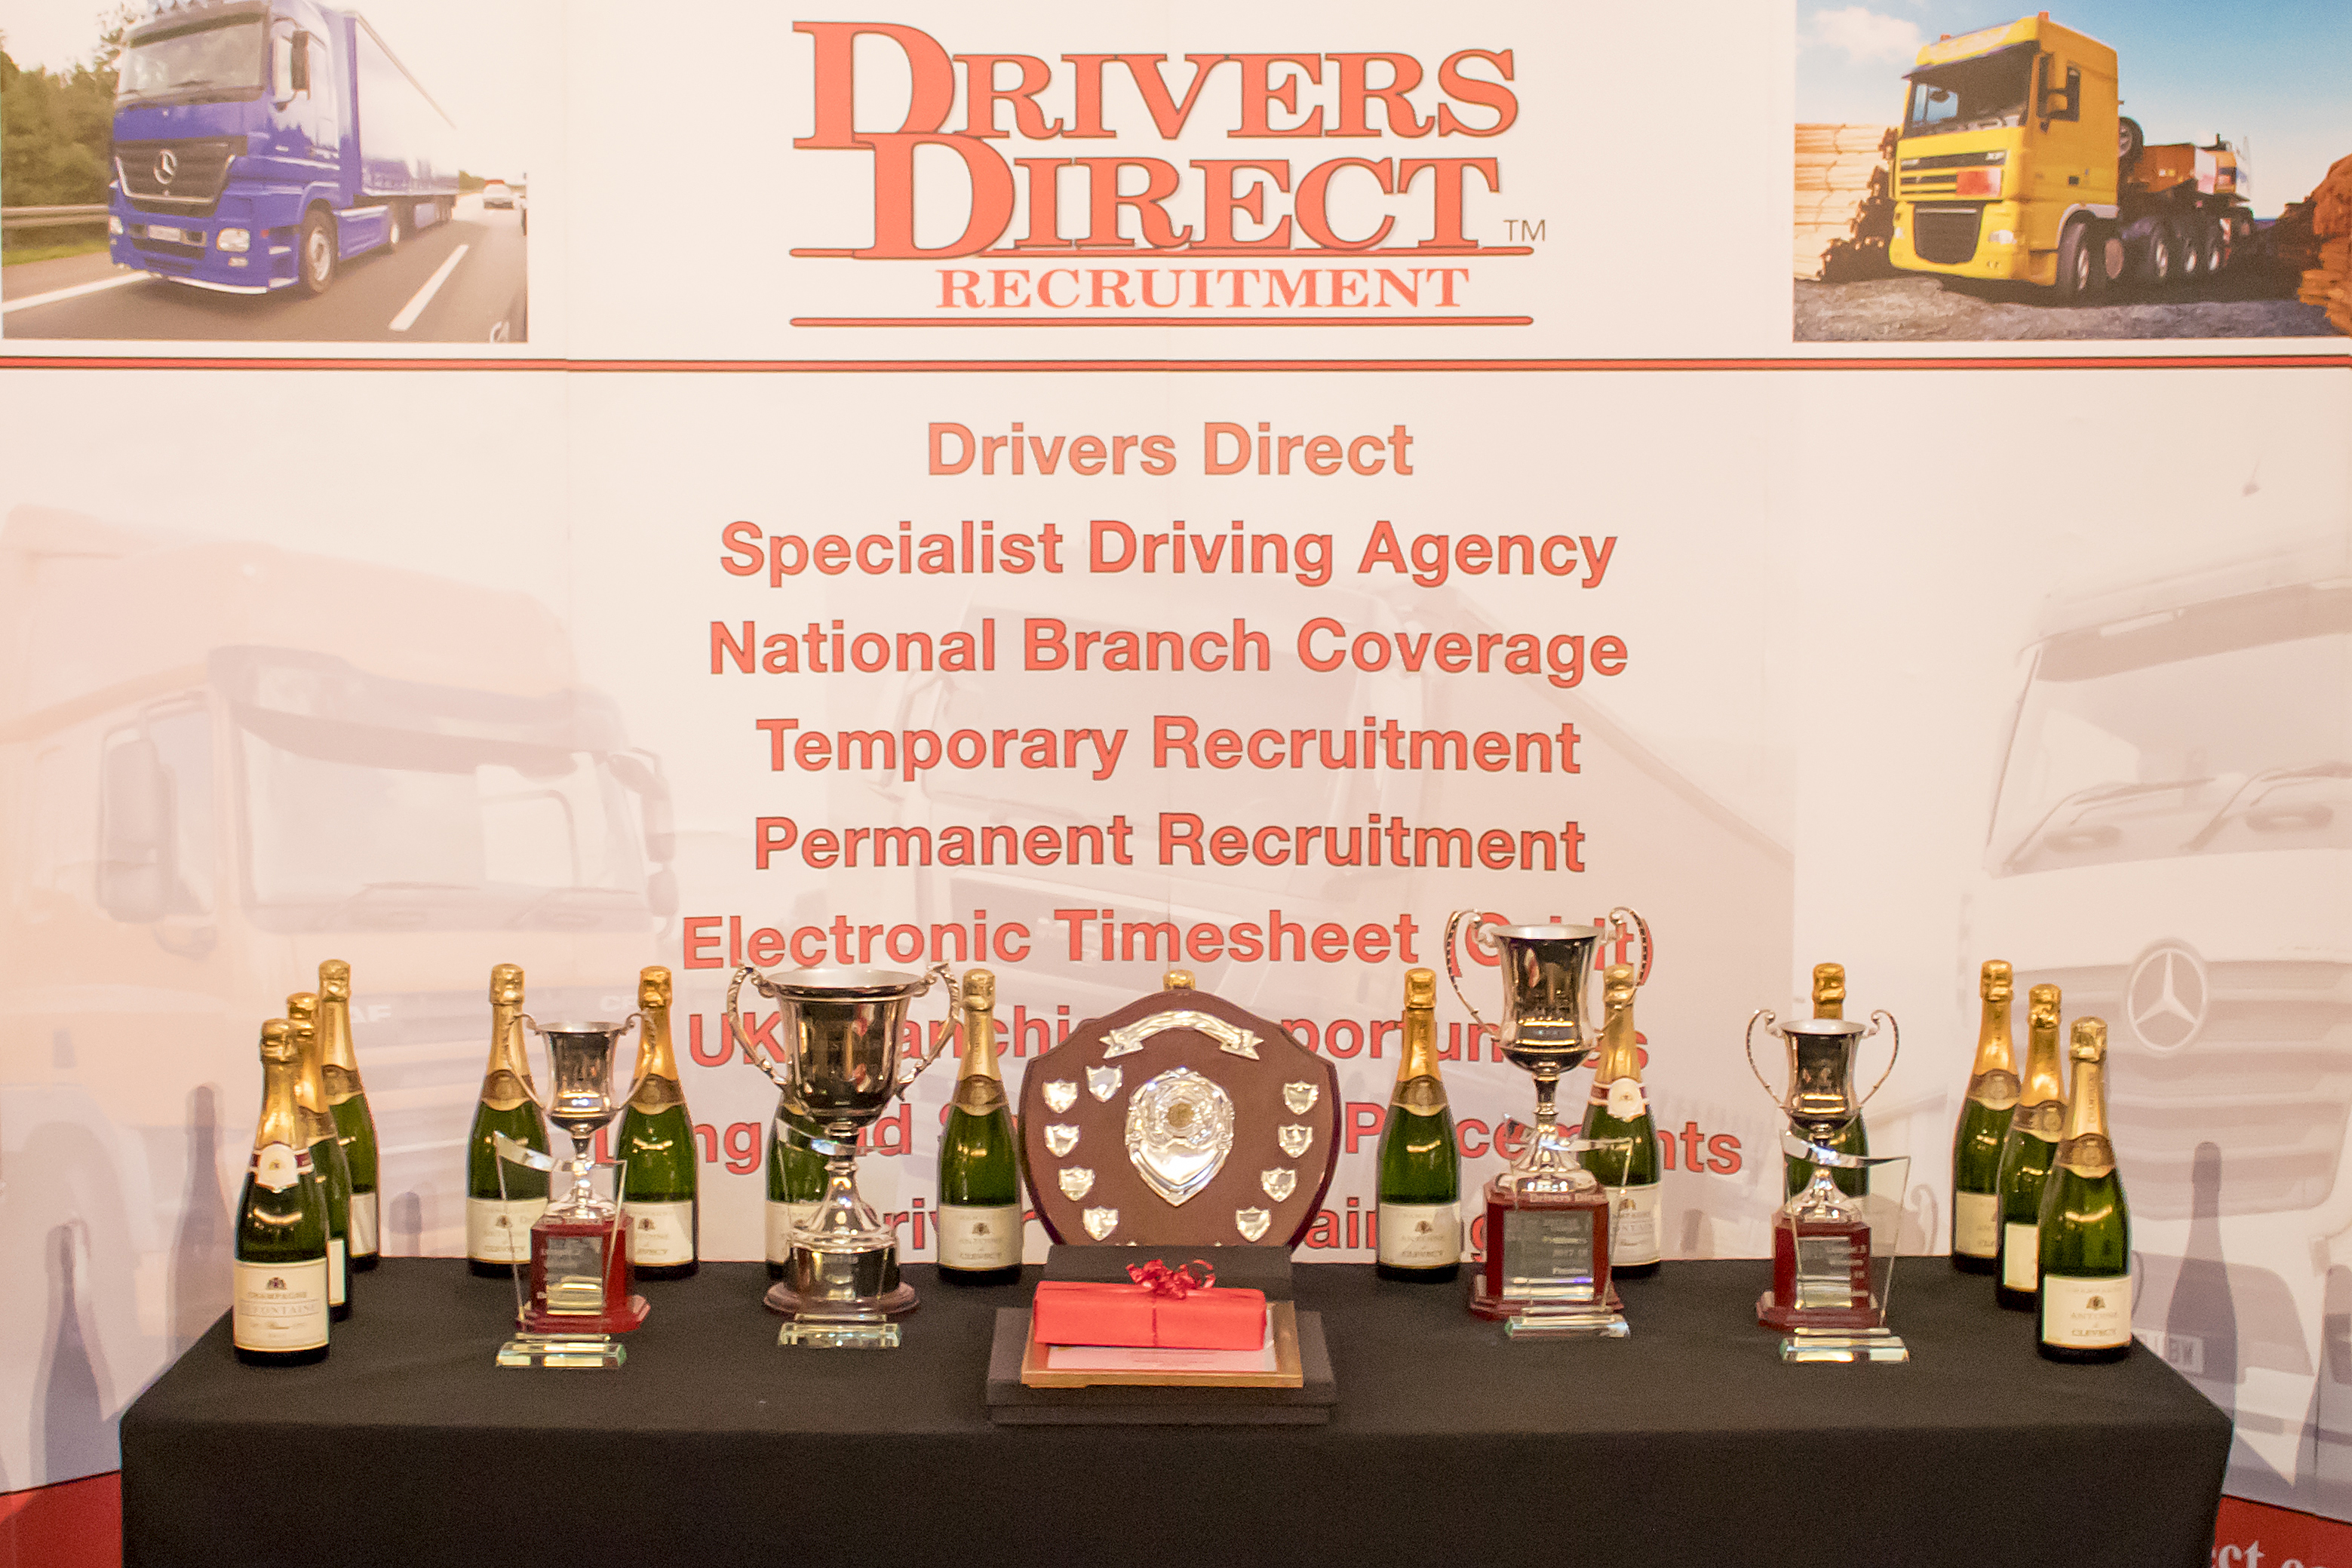 Drivers Direct's Annual Black Tie Ball